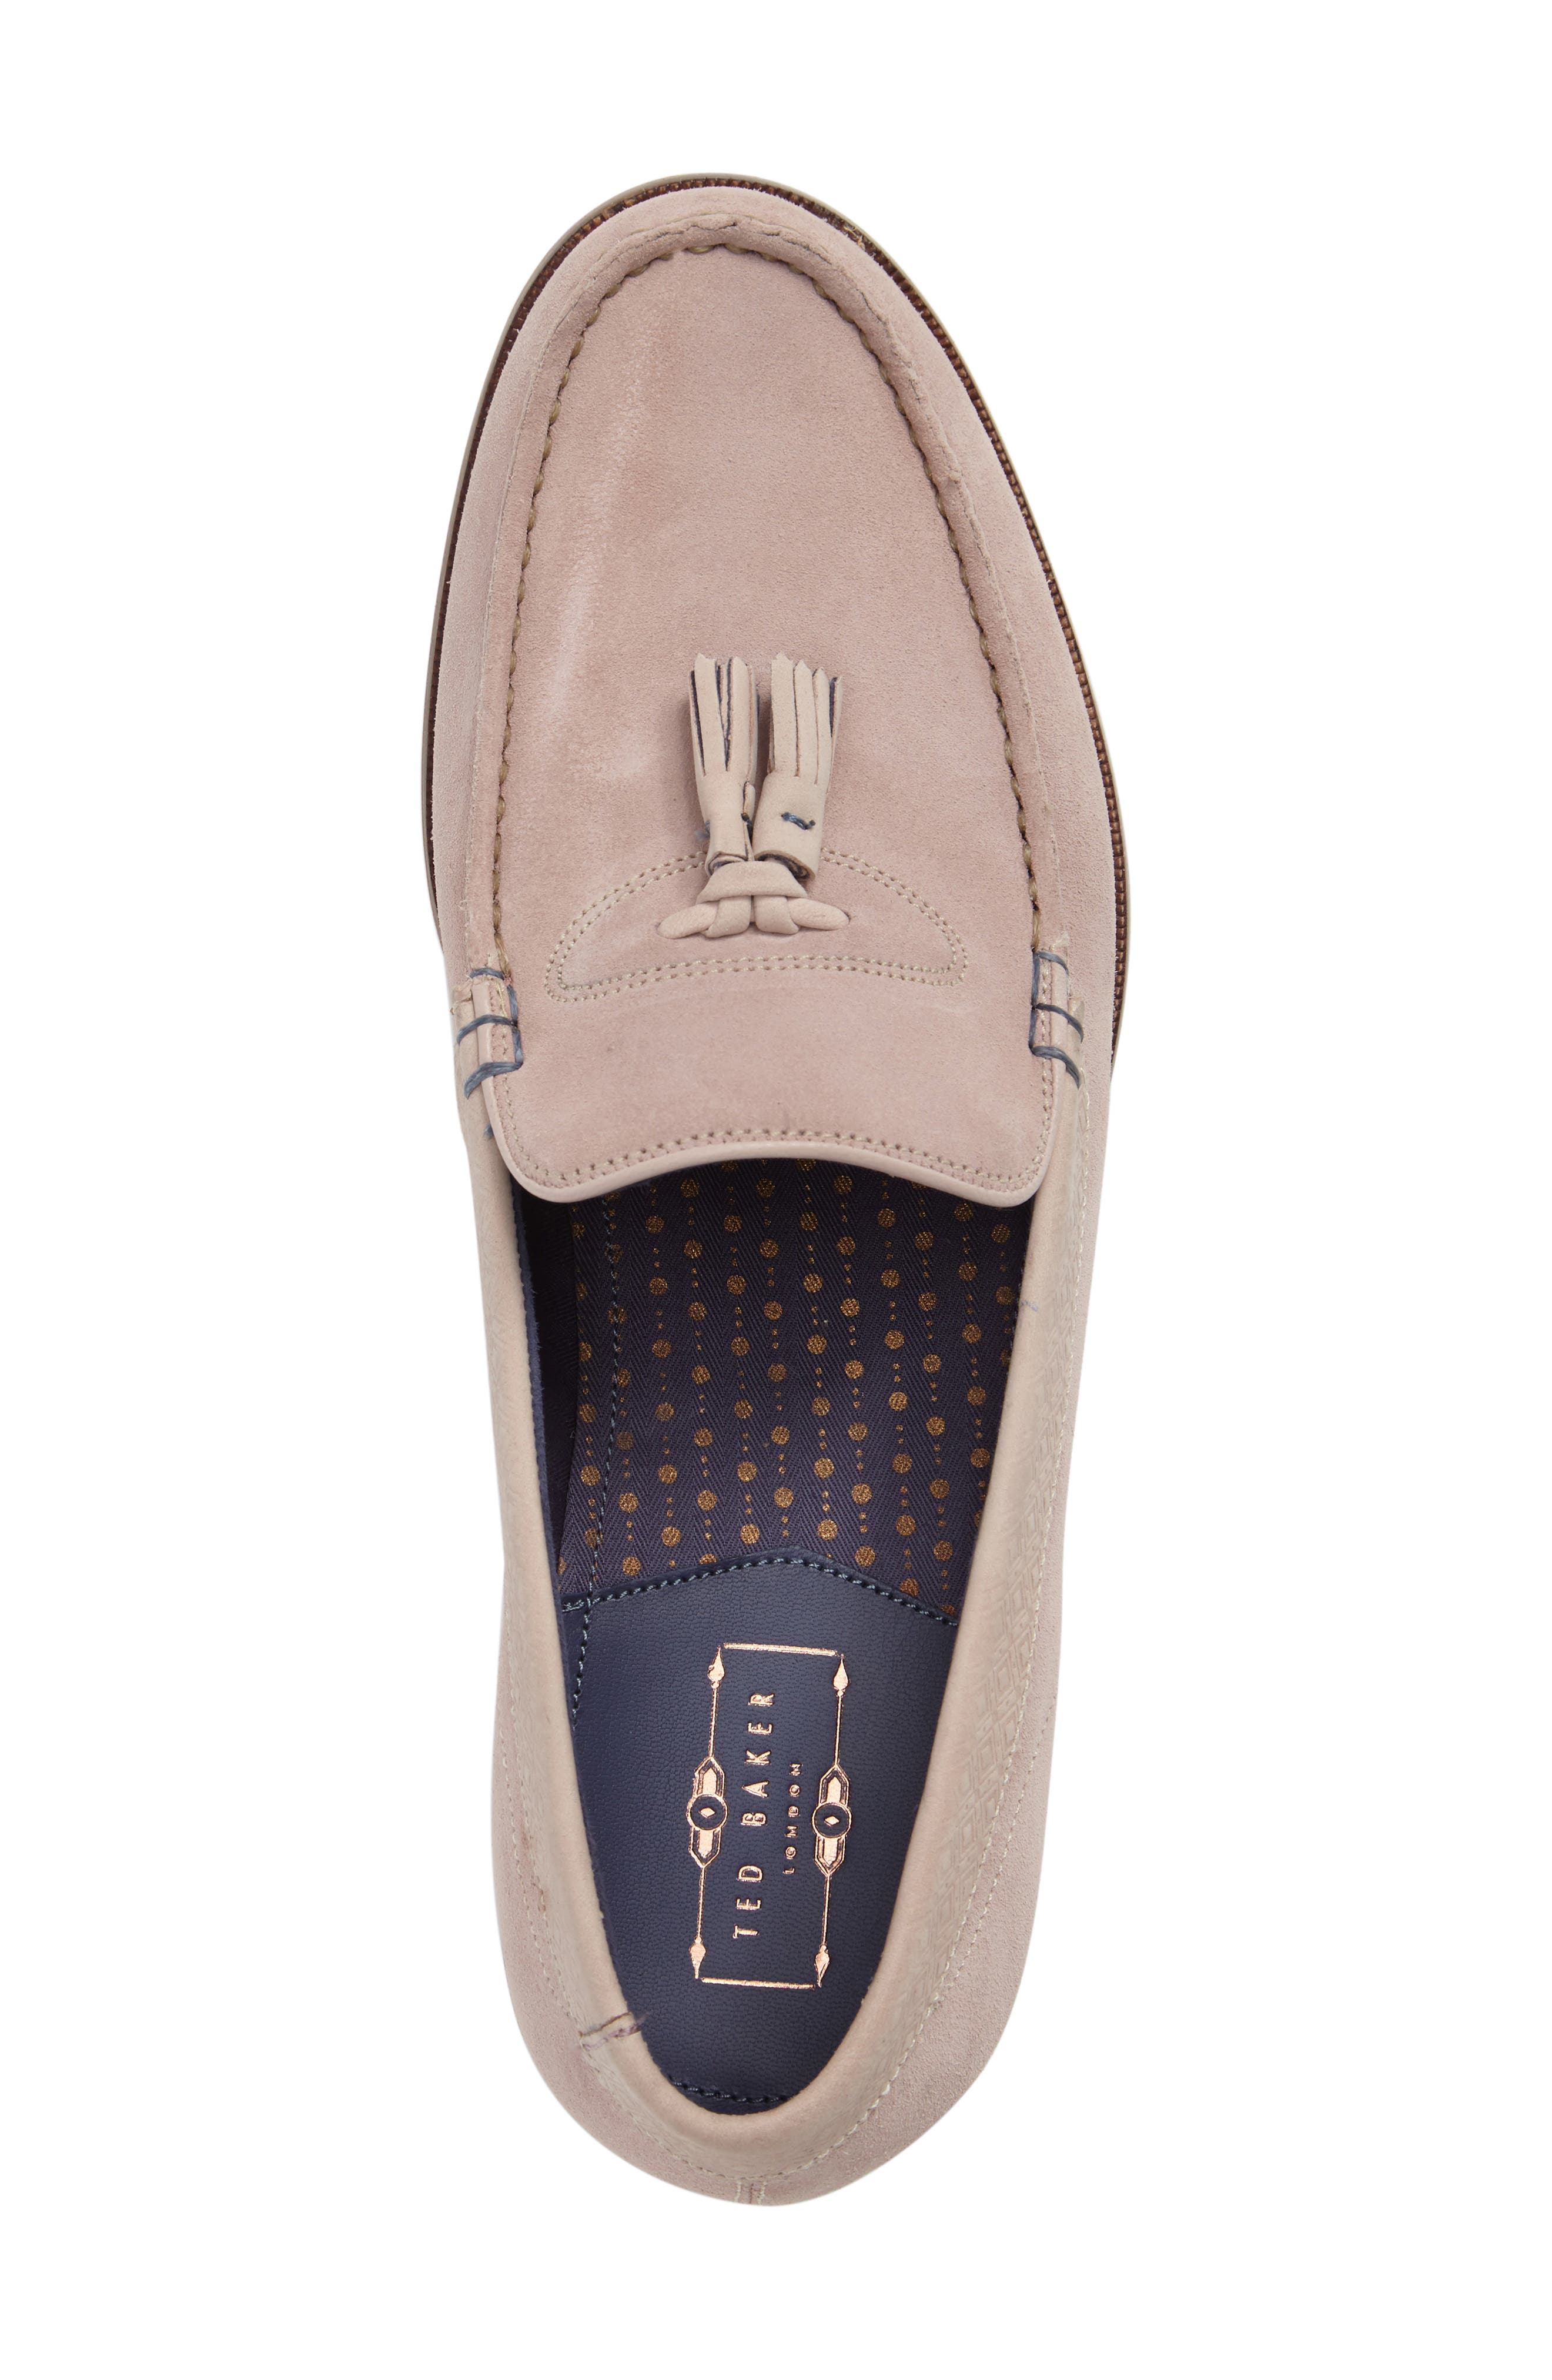 Dougge Tassel Loafer,                             Alternate thumbnail 27, color,